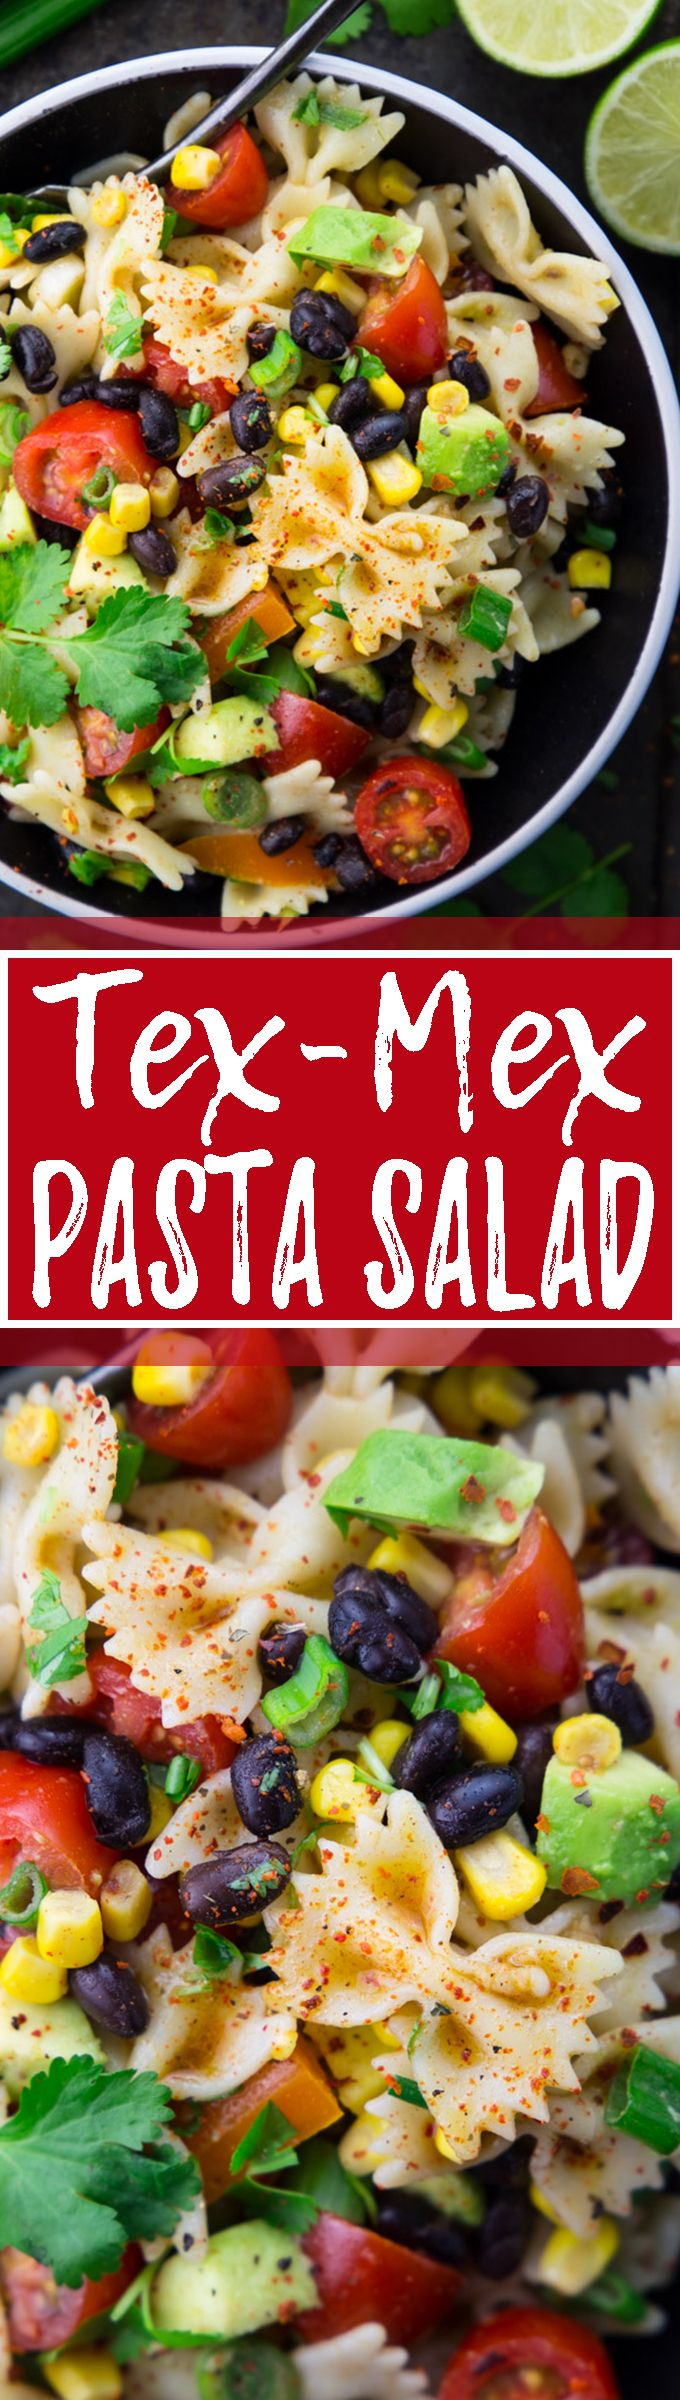 This vegan Tex-Mex pasta salad with avocado and black beans is not only super easy to make but also healthy! I LOVE making it for BBQs and potlucks! <3 | veganheaven.org